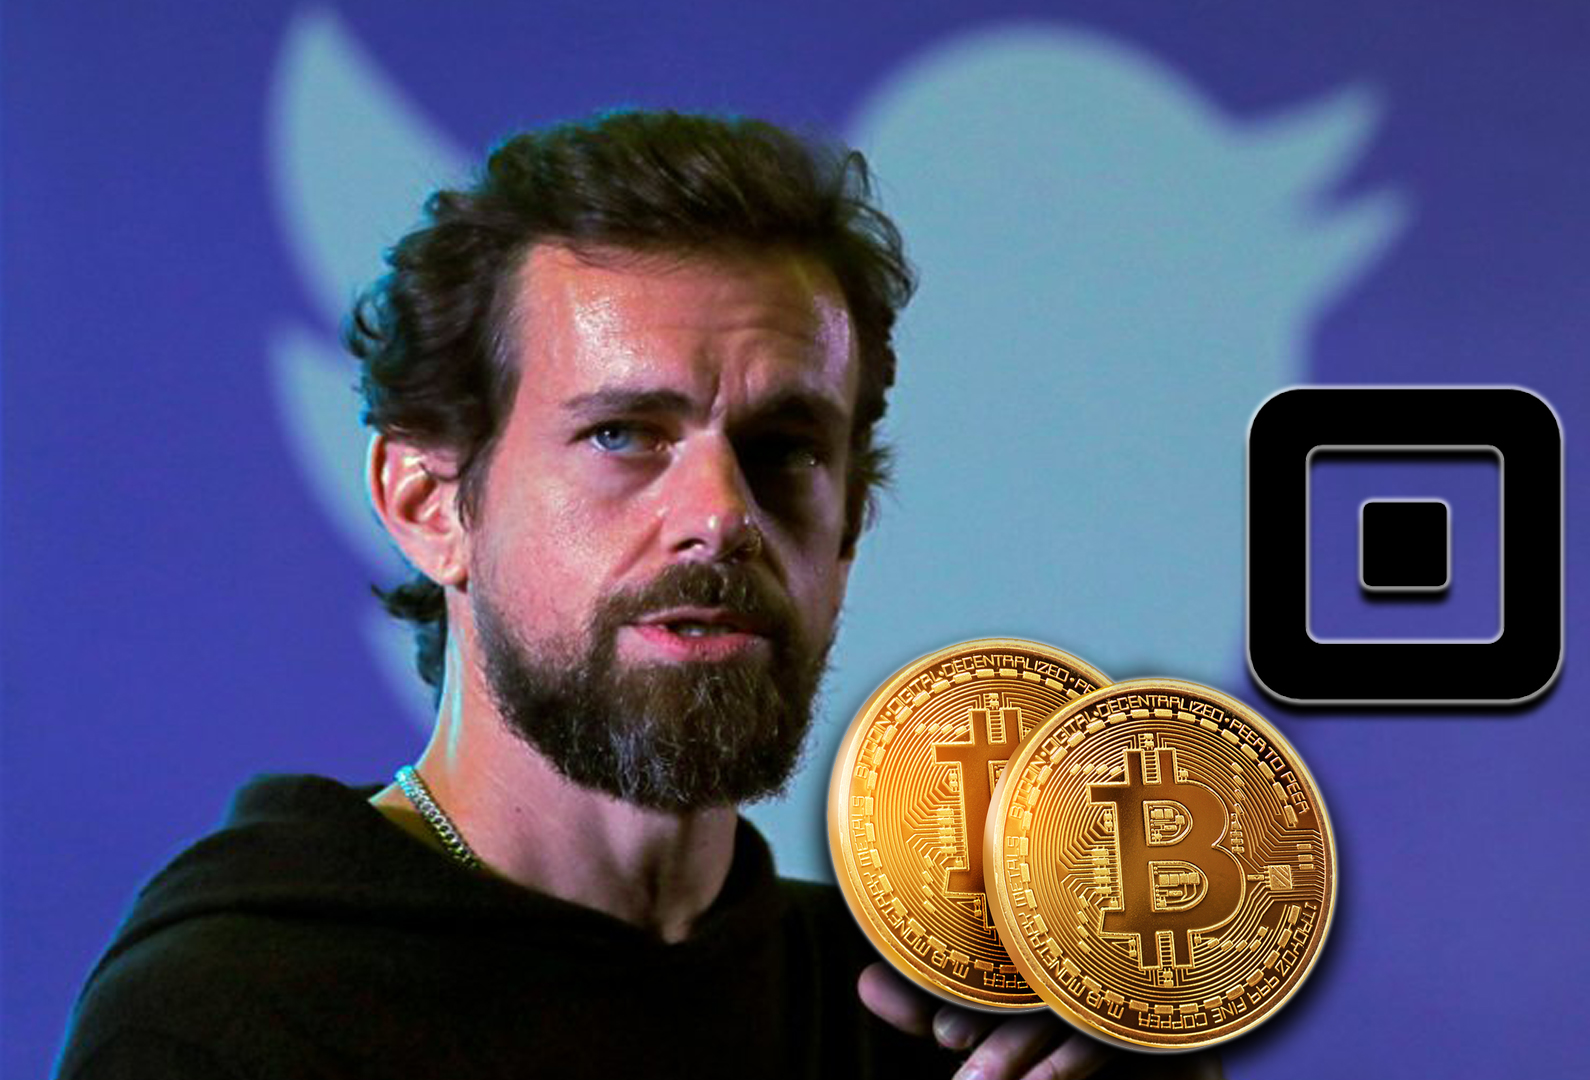 Africa S Bitcoin Market Is Being Eyed By Big Investors Like Twitter S Jack Dorsey Blockpublisher